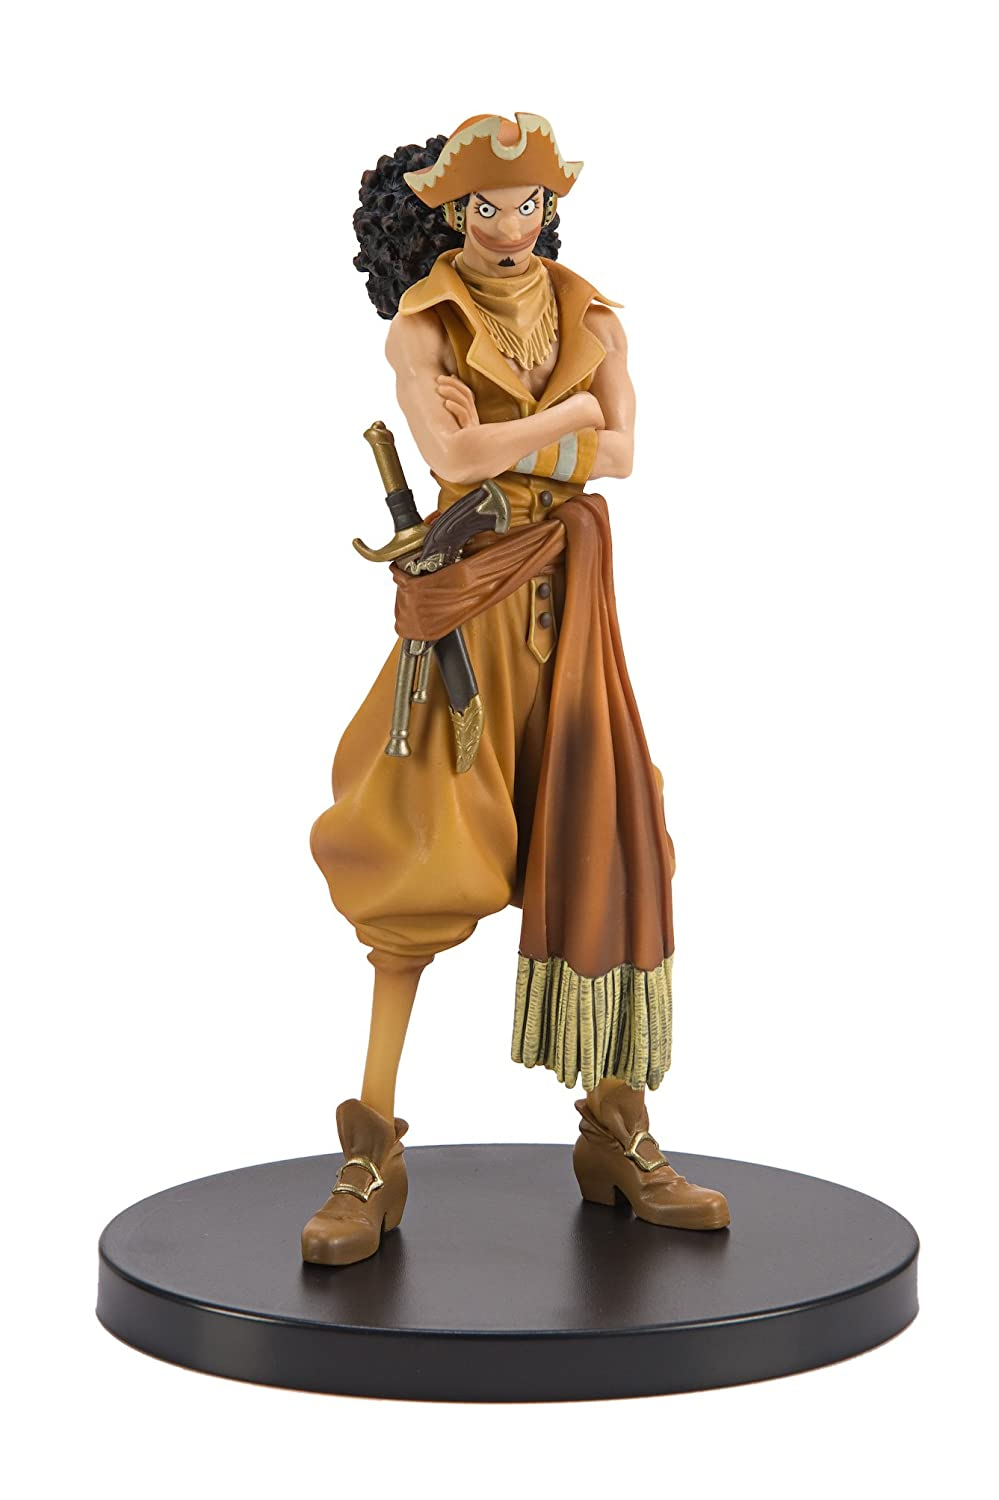 Banpresto One Piece 6.7-Inch 15th Anniversary Edition Usopp DXF Sculpture The Grandline Men Volume 2